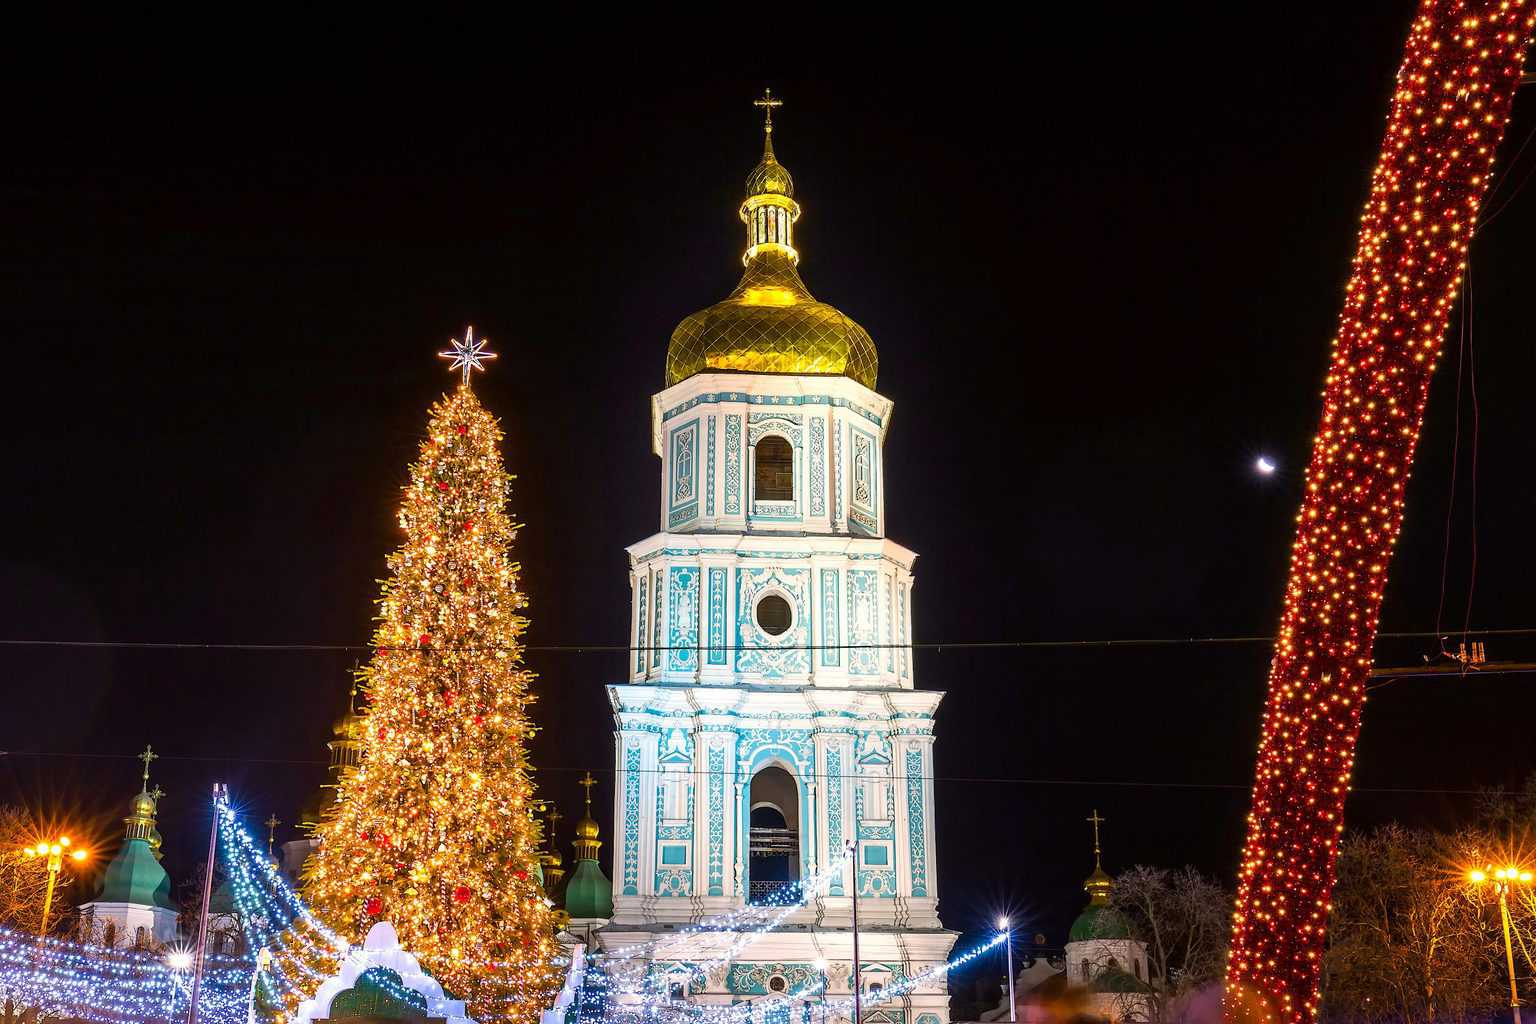 The beautiful Christmas Market you'll find in Kontraktova Square in Kiev, Ukraine.